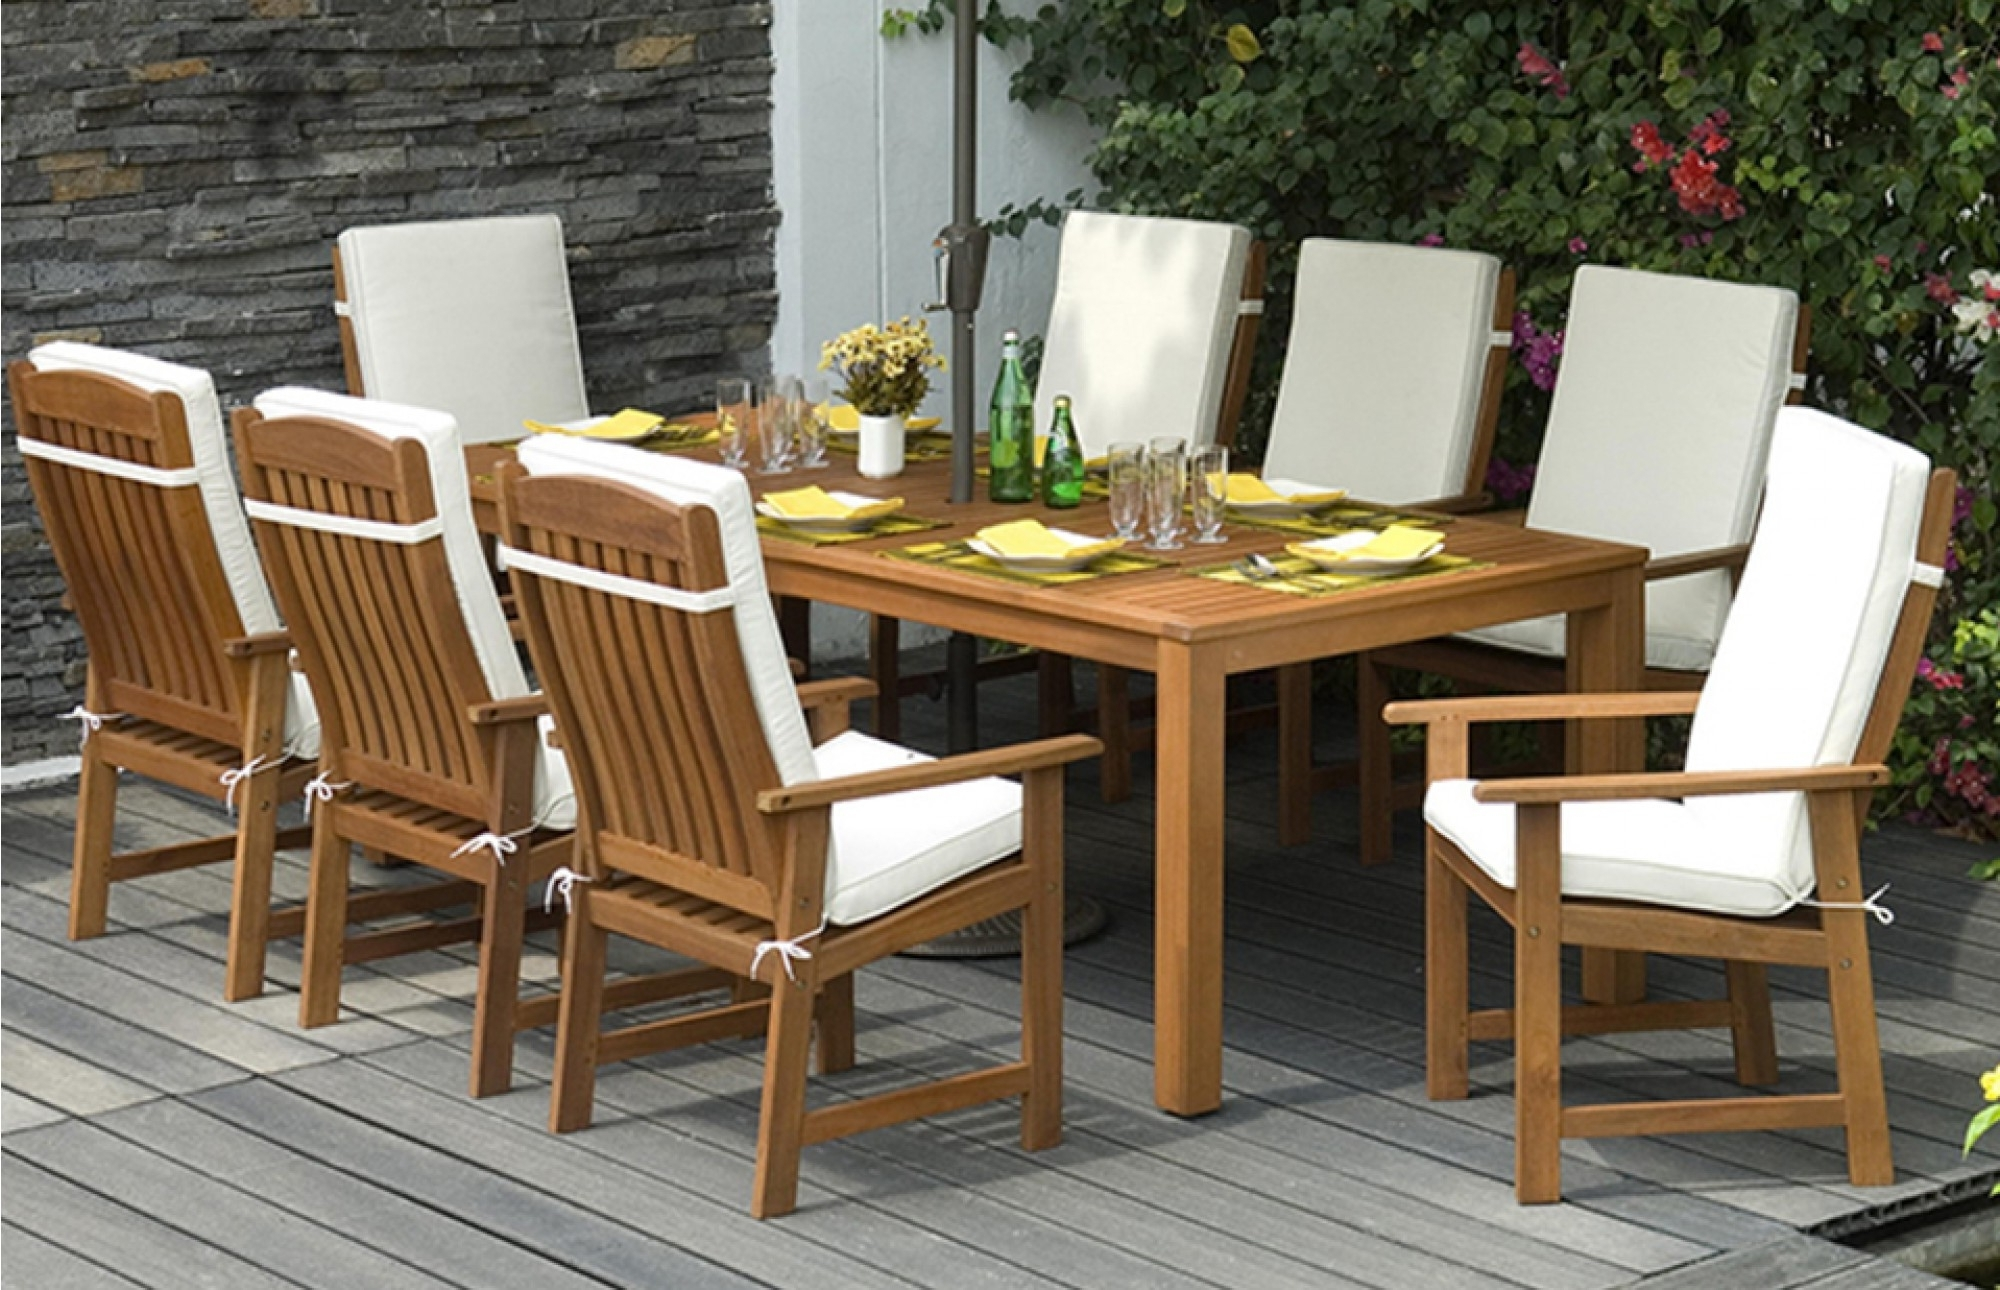 8 Seater Dining Table Sets Throughout Most Popular Dining Table Sets 8 Seater • Table Setting Ideas (View 25 of 25)